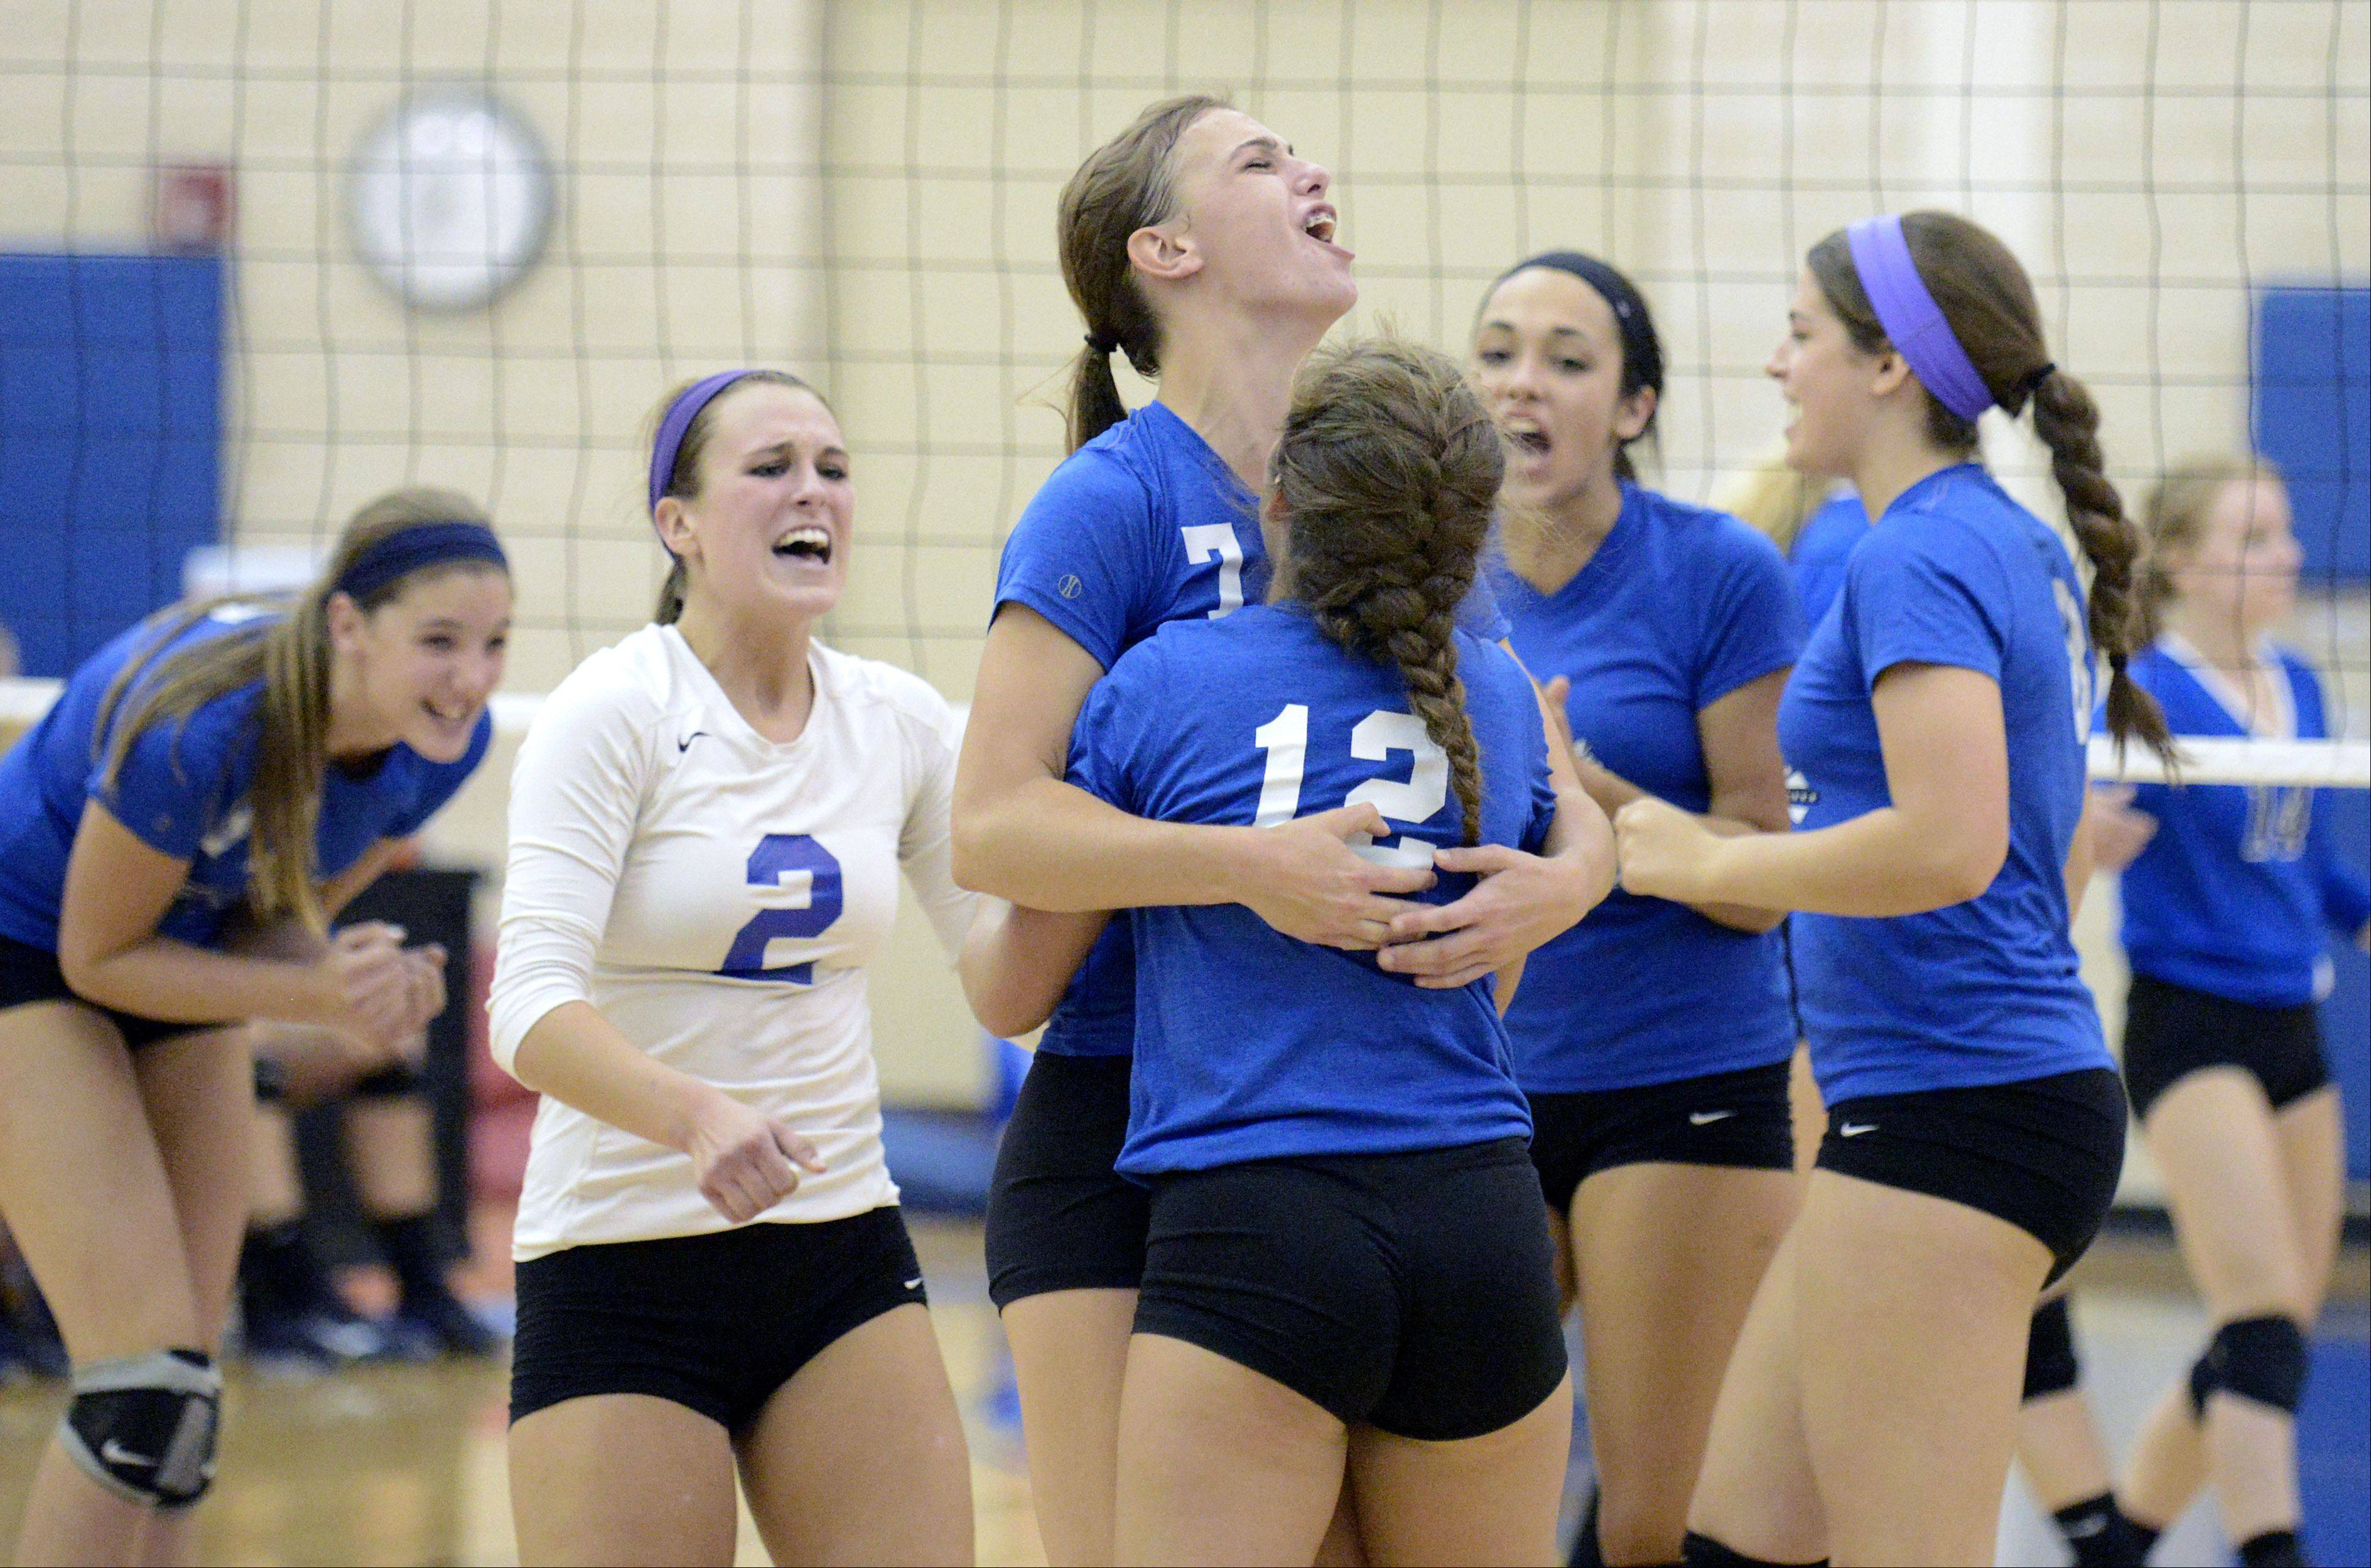 St. Charles North's Taylor Krage (7) hugs teammate Sydney Wohlert after scoring a point over Geneva in the first match on Tuesday, September 24.